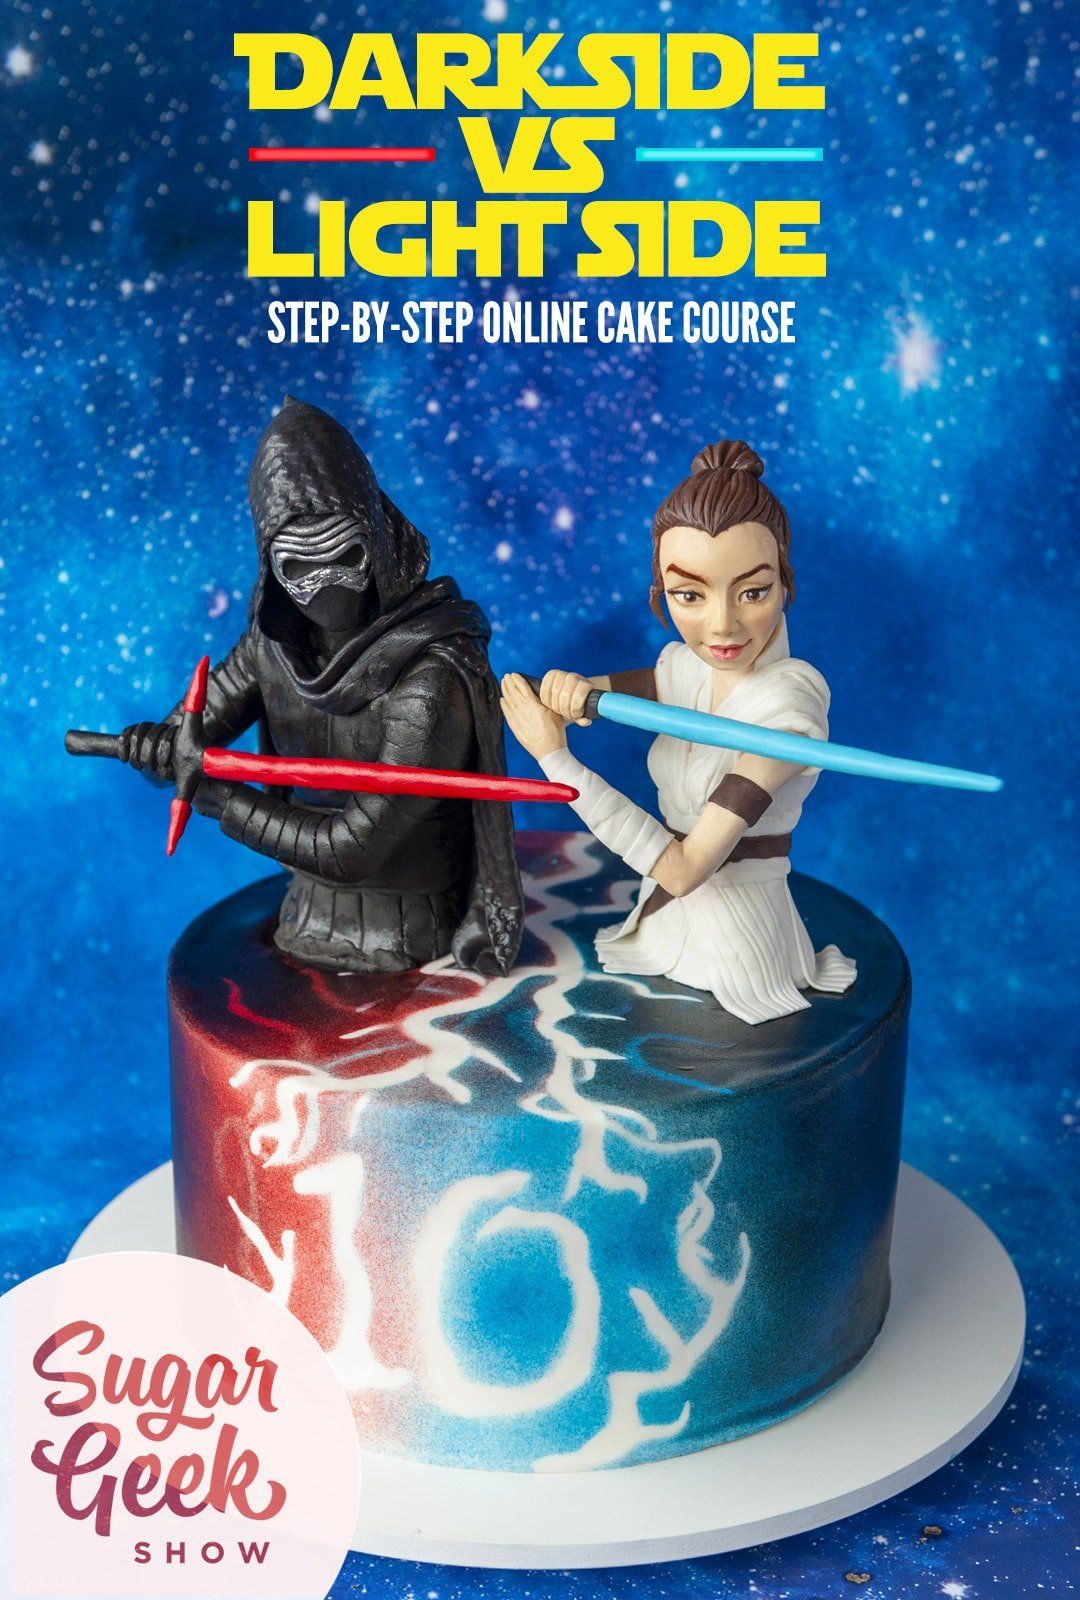 Birthday cake with red and blue lightning spelling out number 10 and Rey and Kylo Ren sculpted cake toppers holding lightsabers